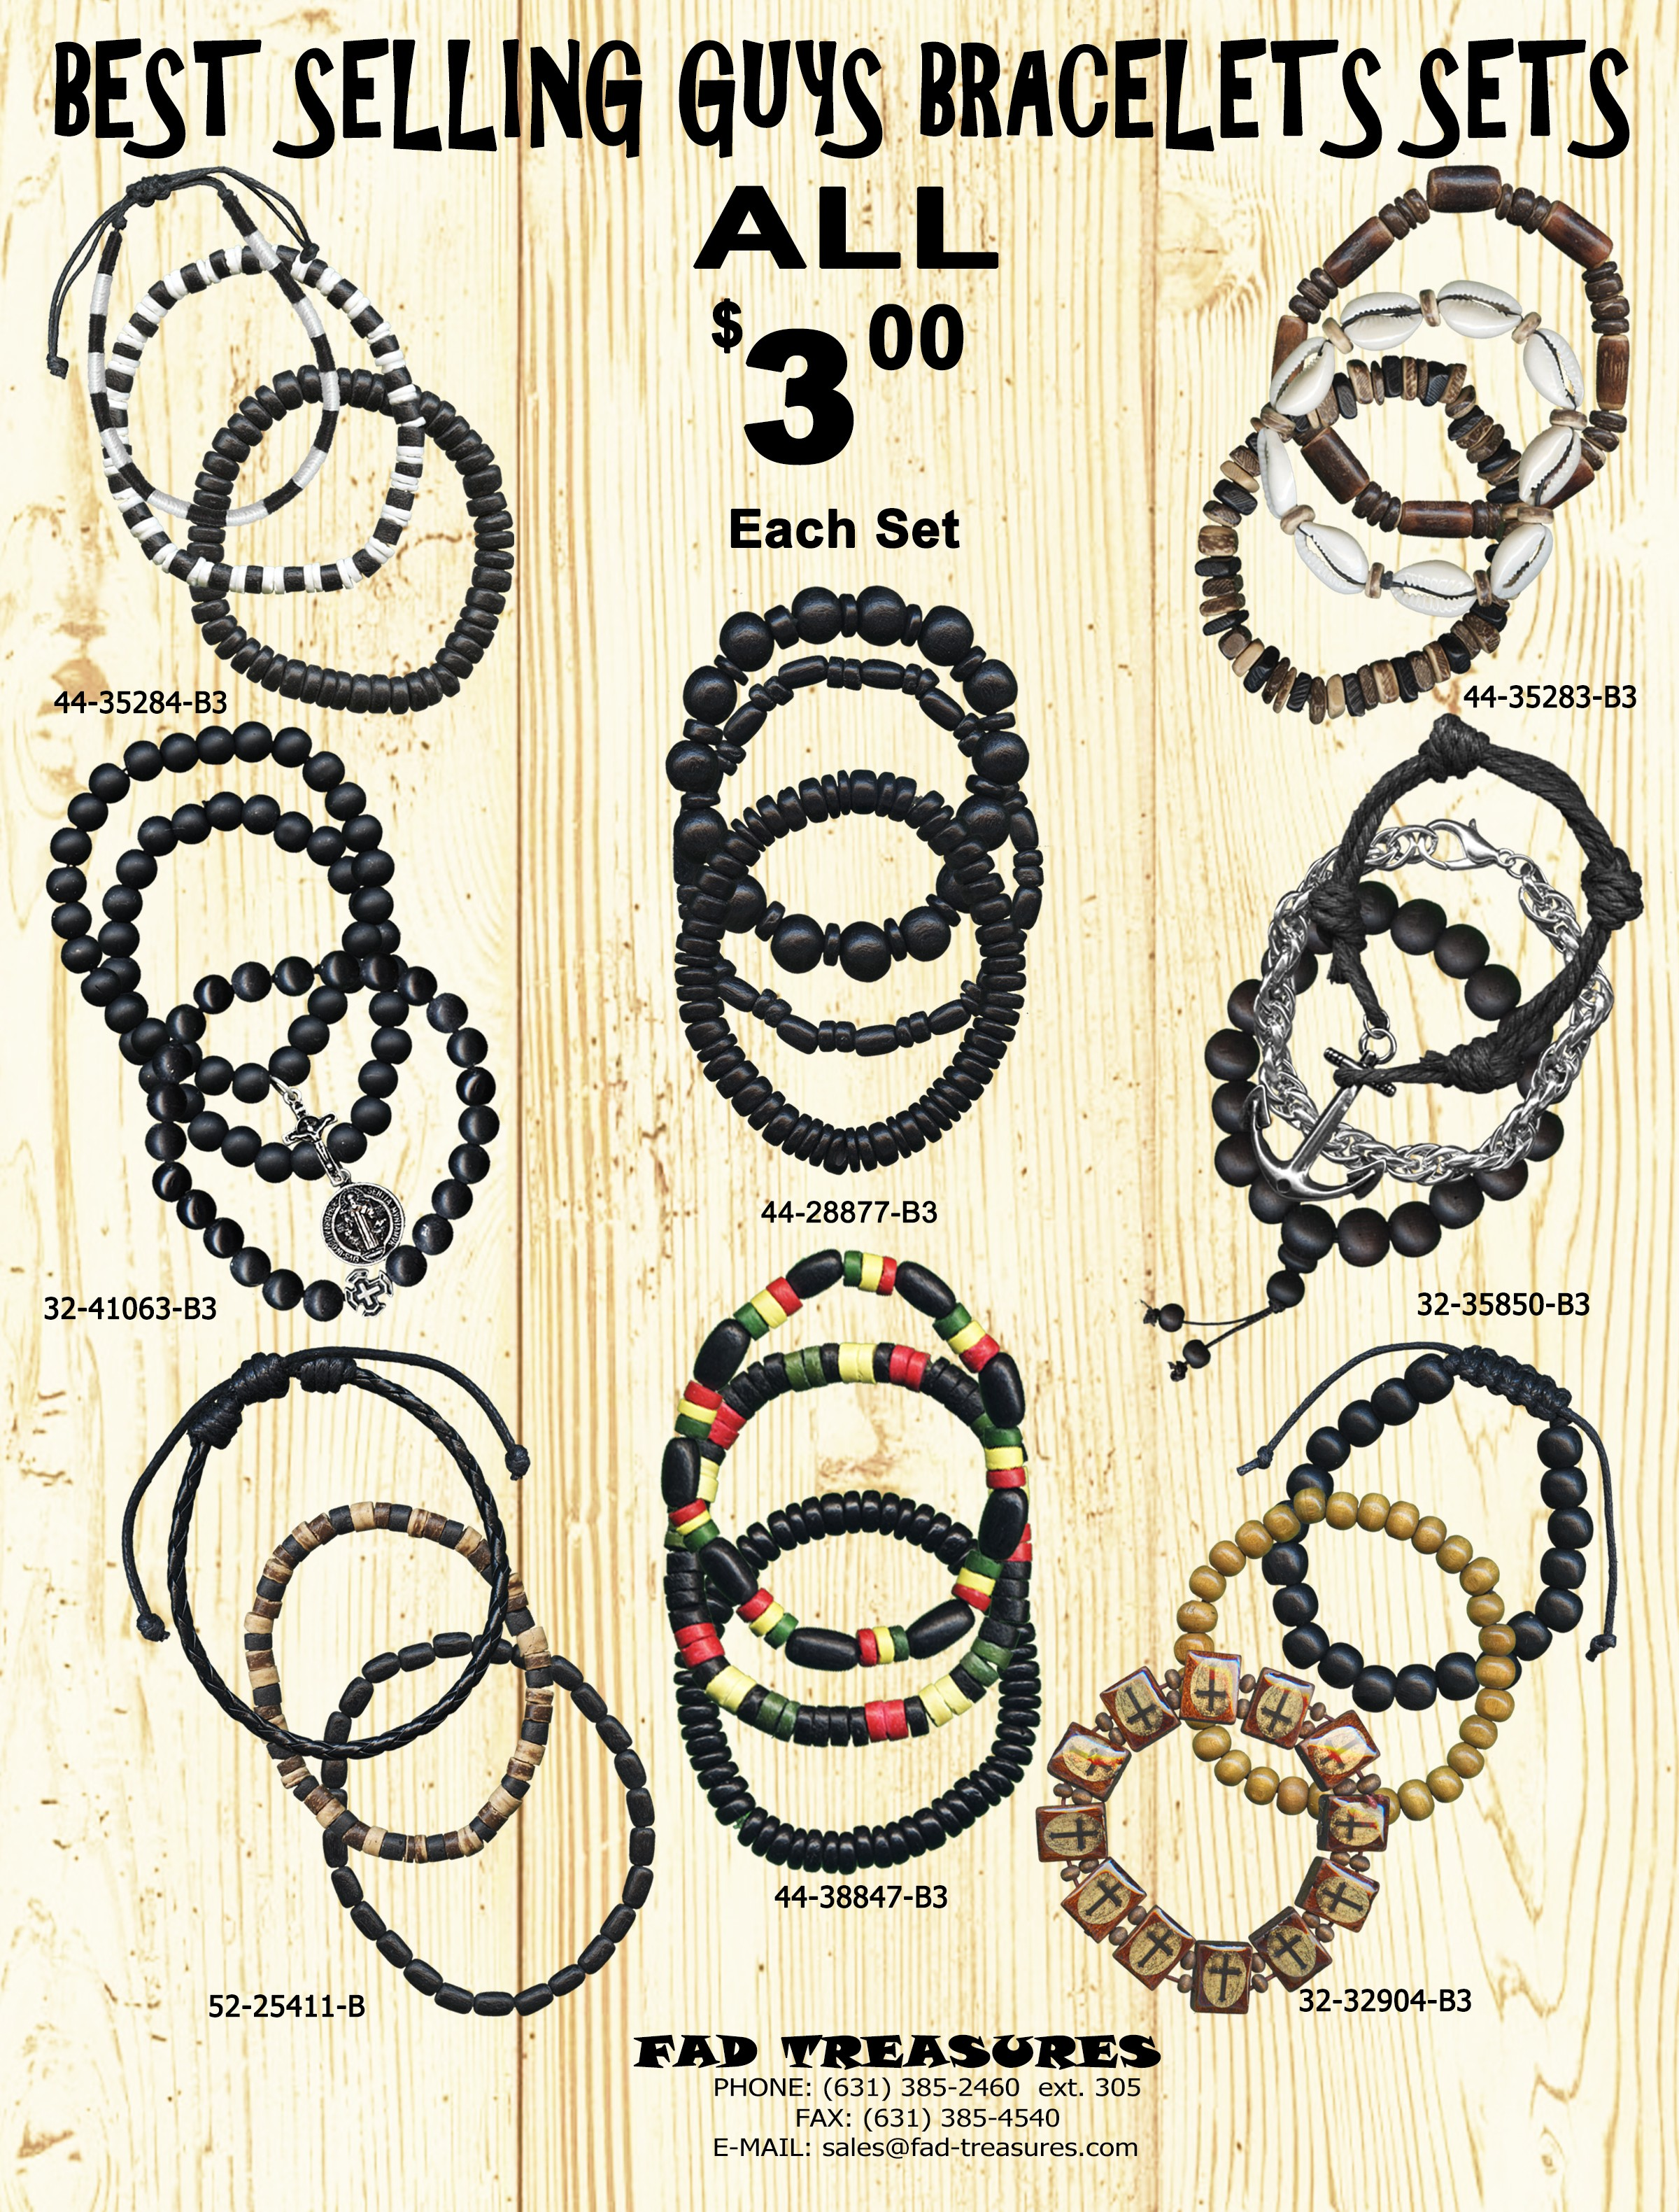 Best Selling Guys Bracelets